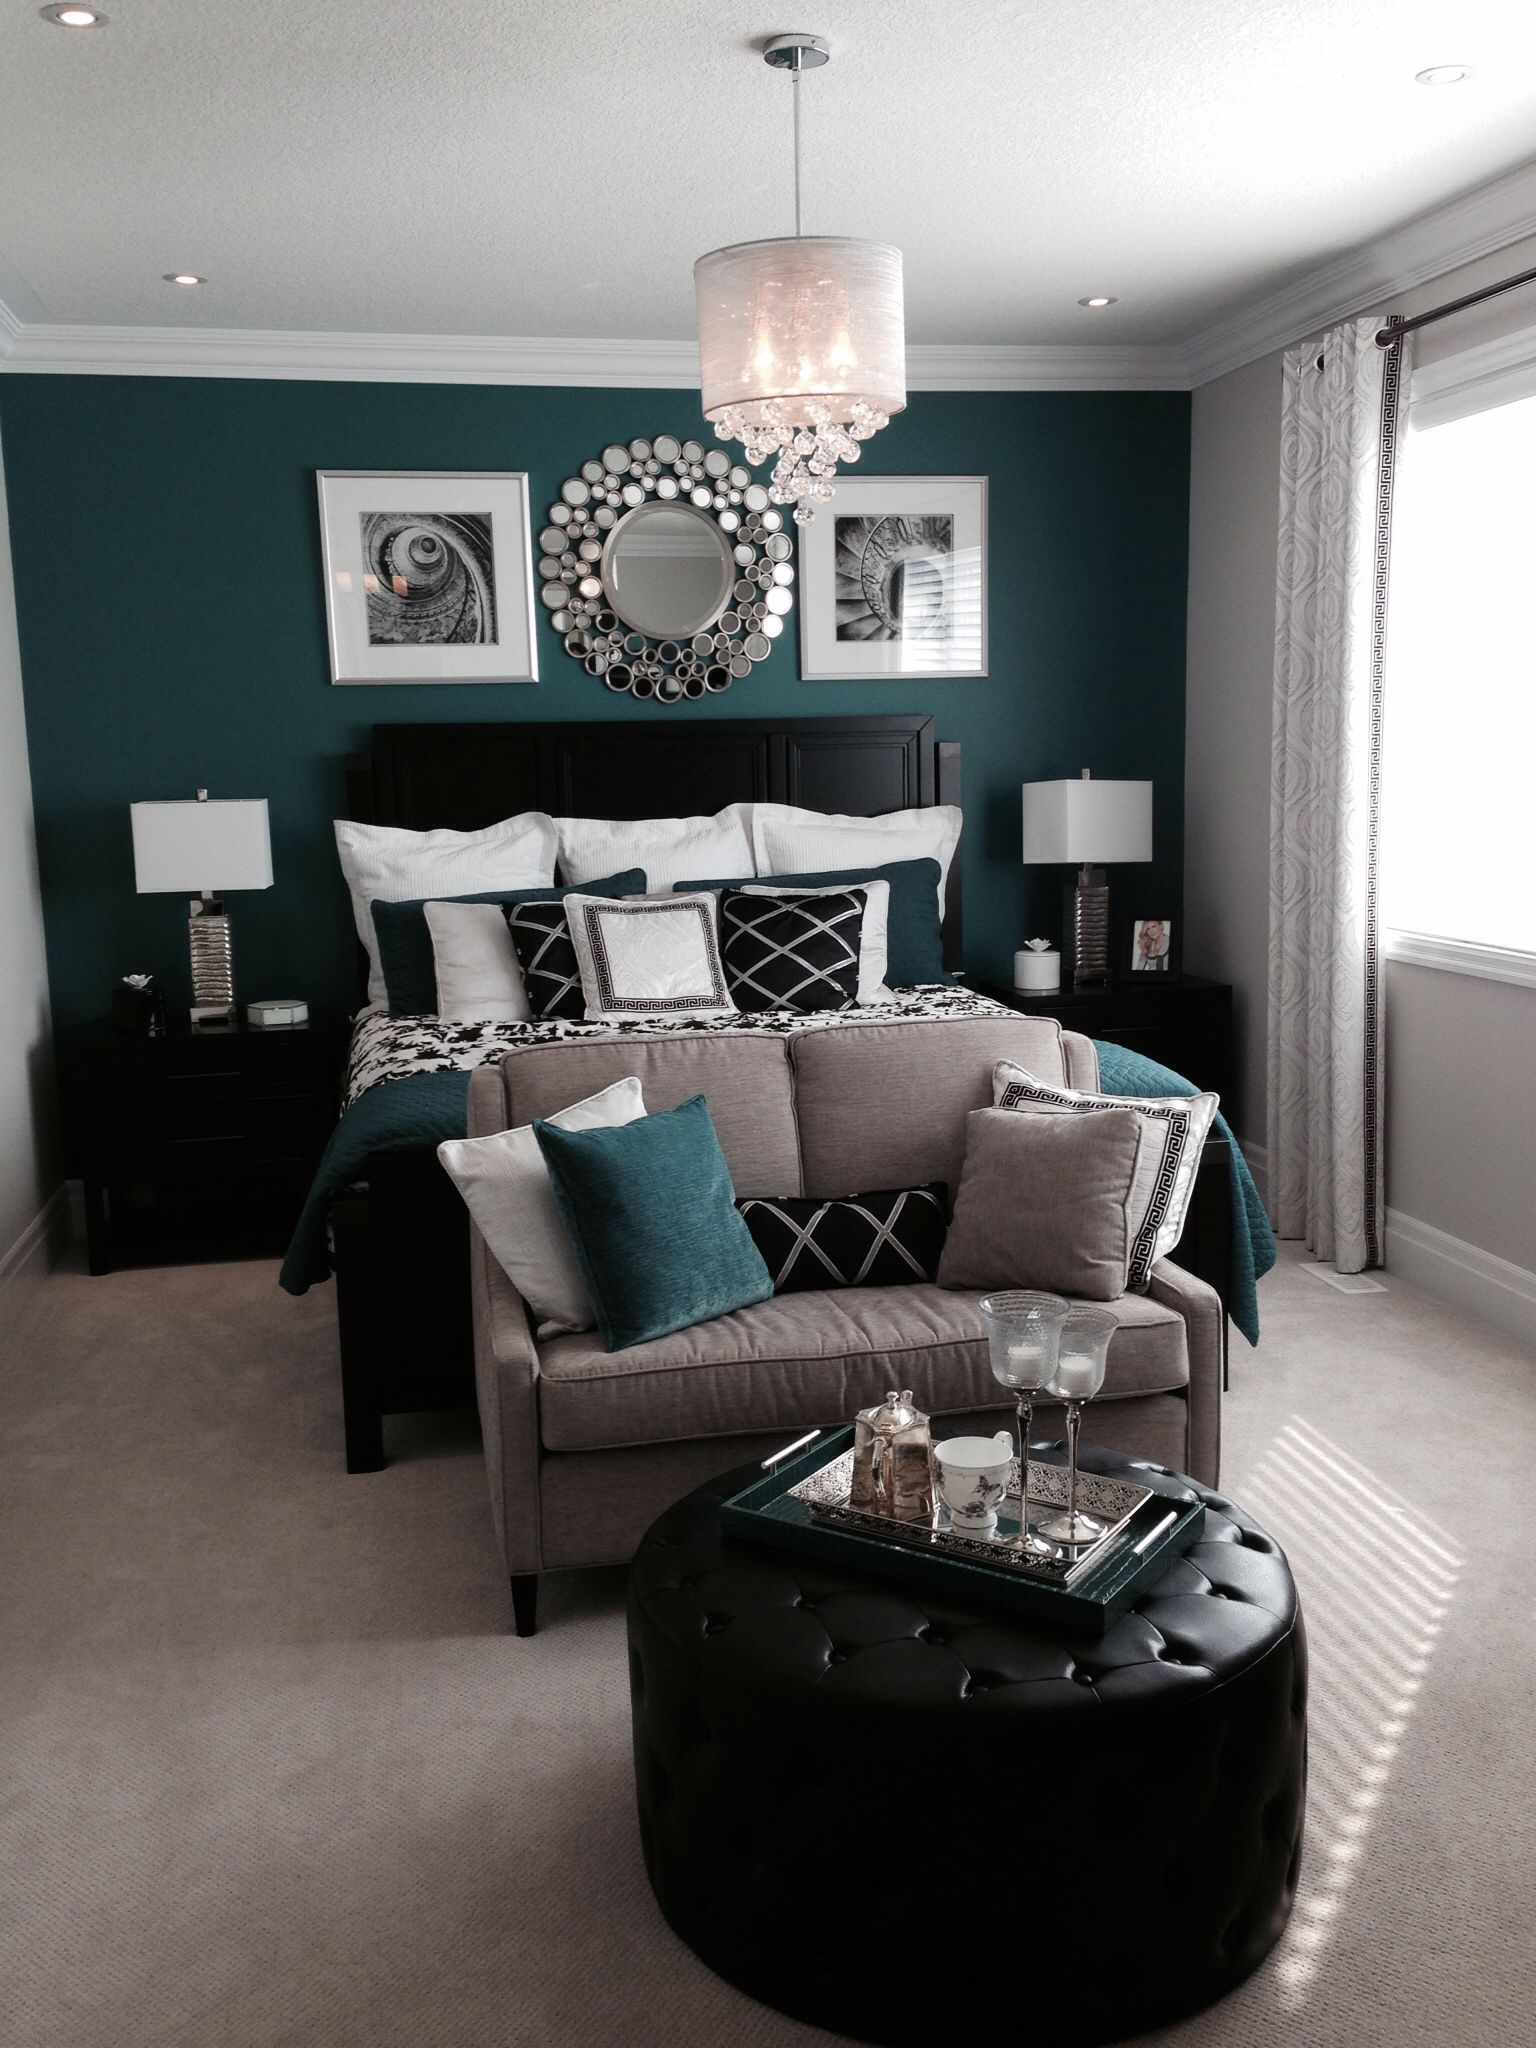 Diy Bedroom Ideas For Girls Or Boys Furniture Black Accents Bedrooms And Teal